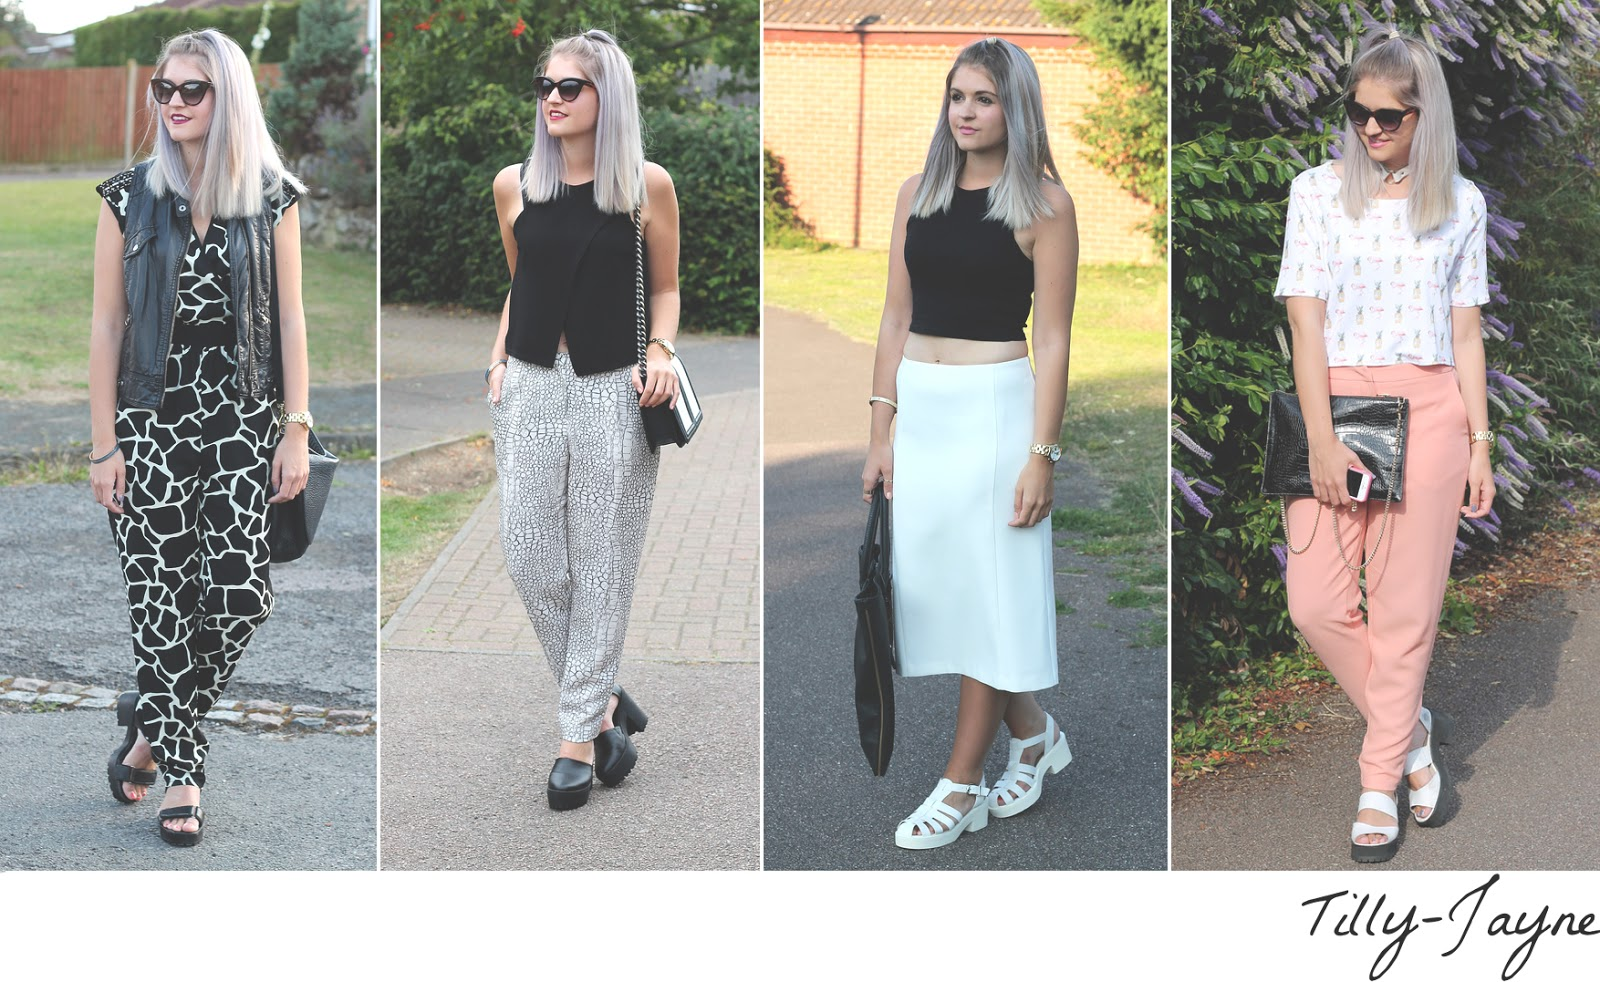 tilly jayne blog, fashion blogger, british style blogger